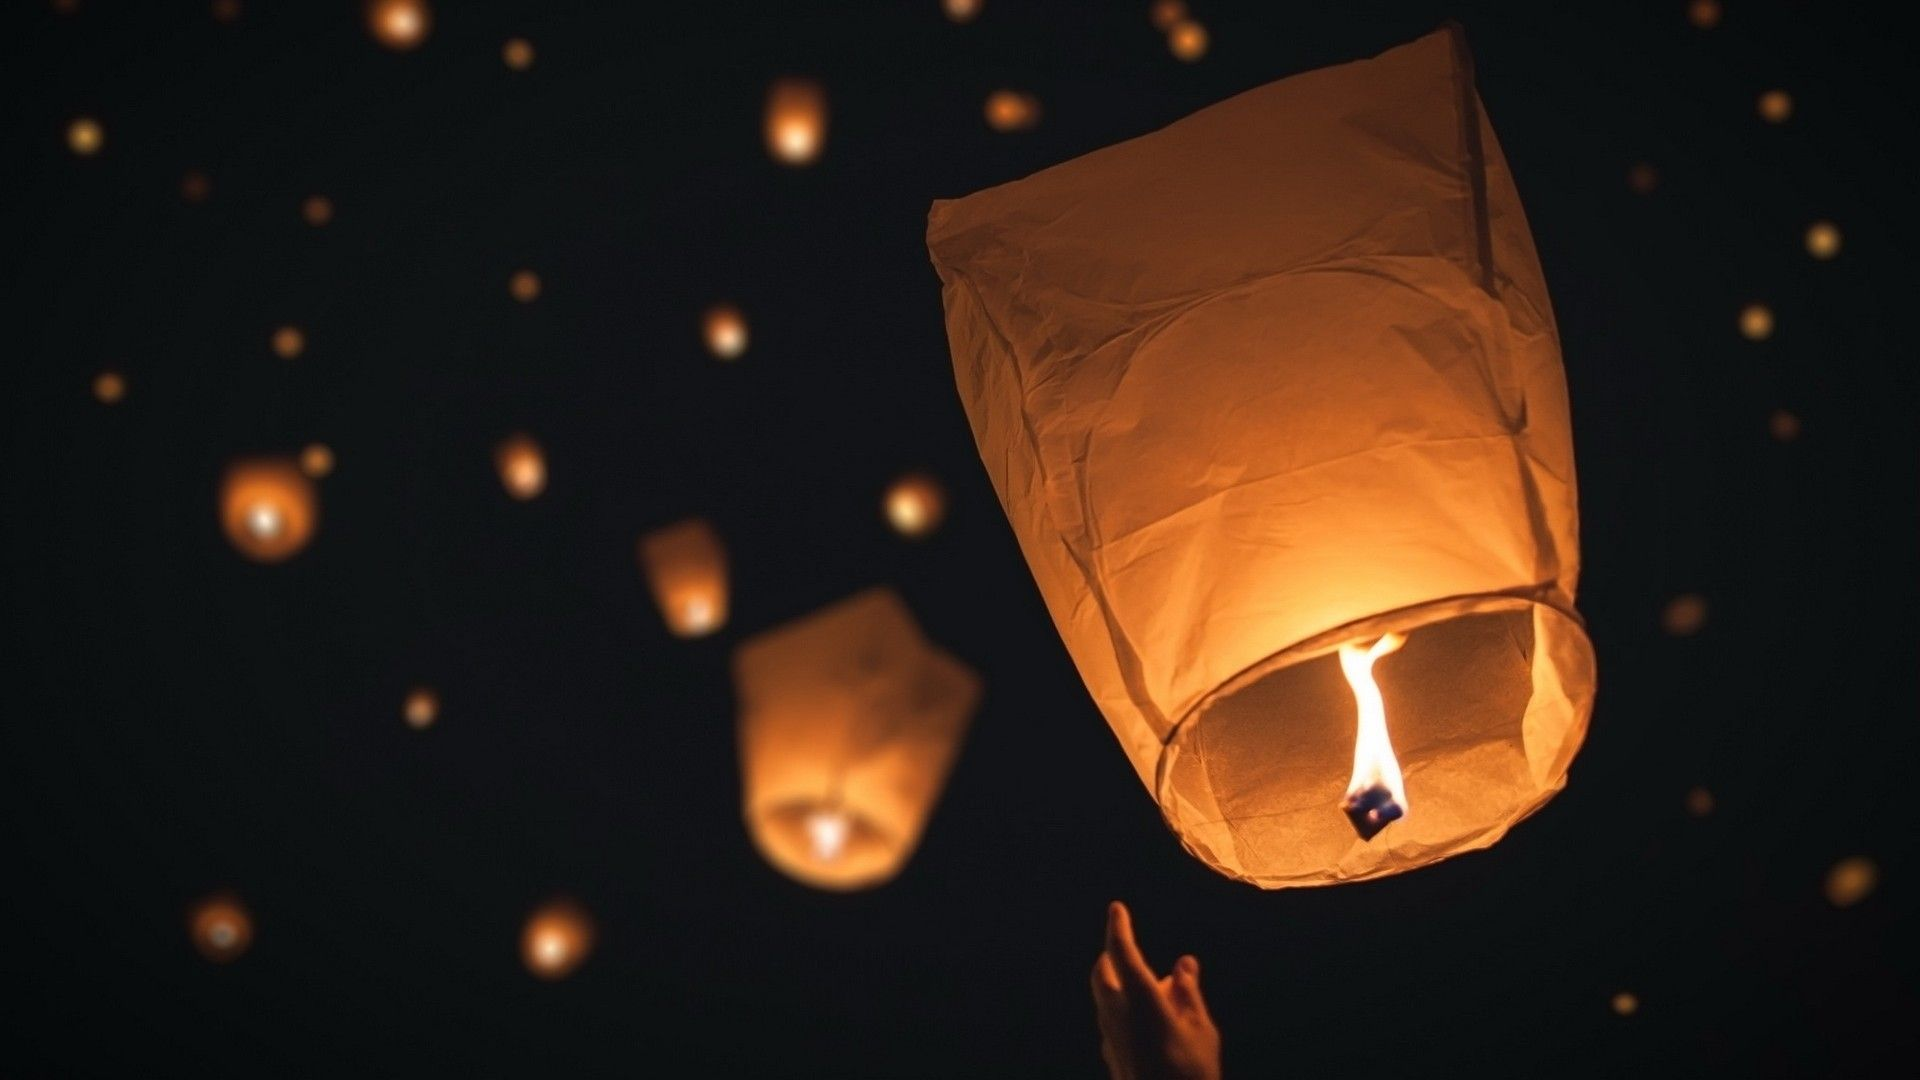 46 Best Free Floating Lanterns Wallpapers Wallpaperaccess